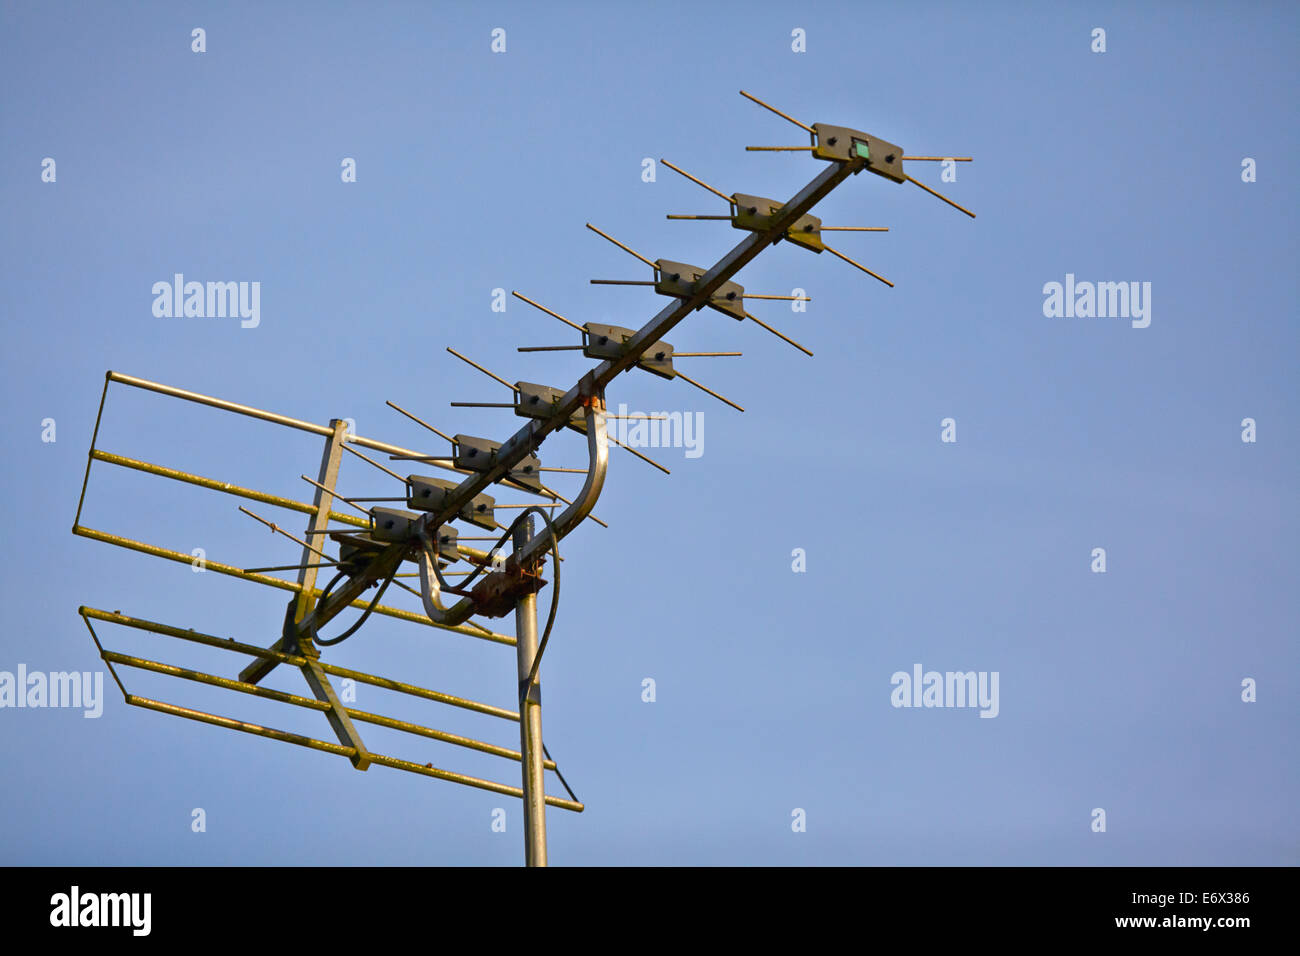 Wideband analogue TV aerial - Stock Image